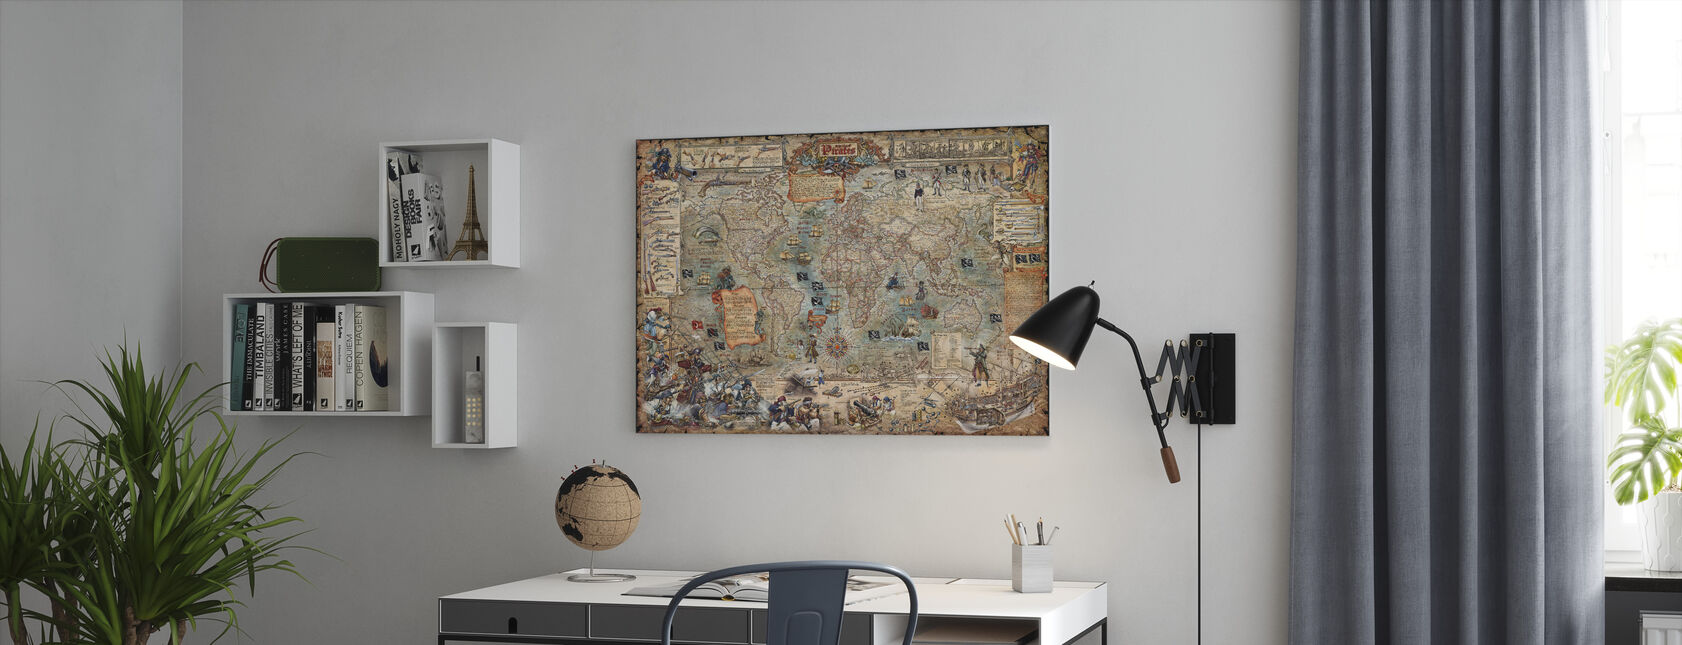 Pirate Map - Canvas print - Office